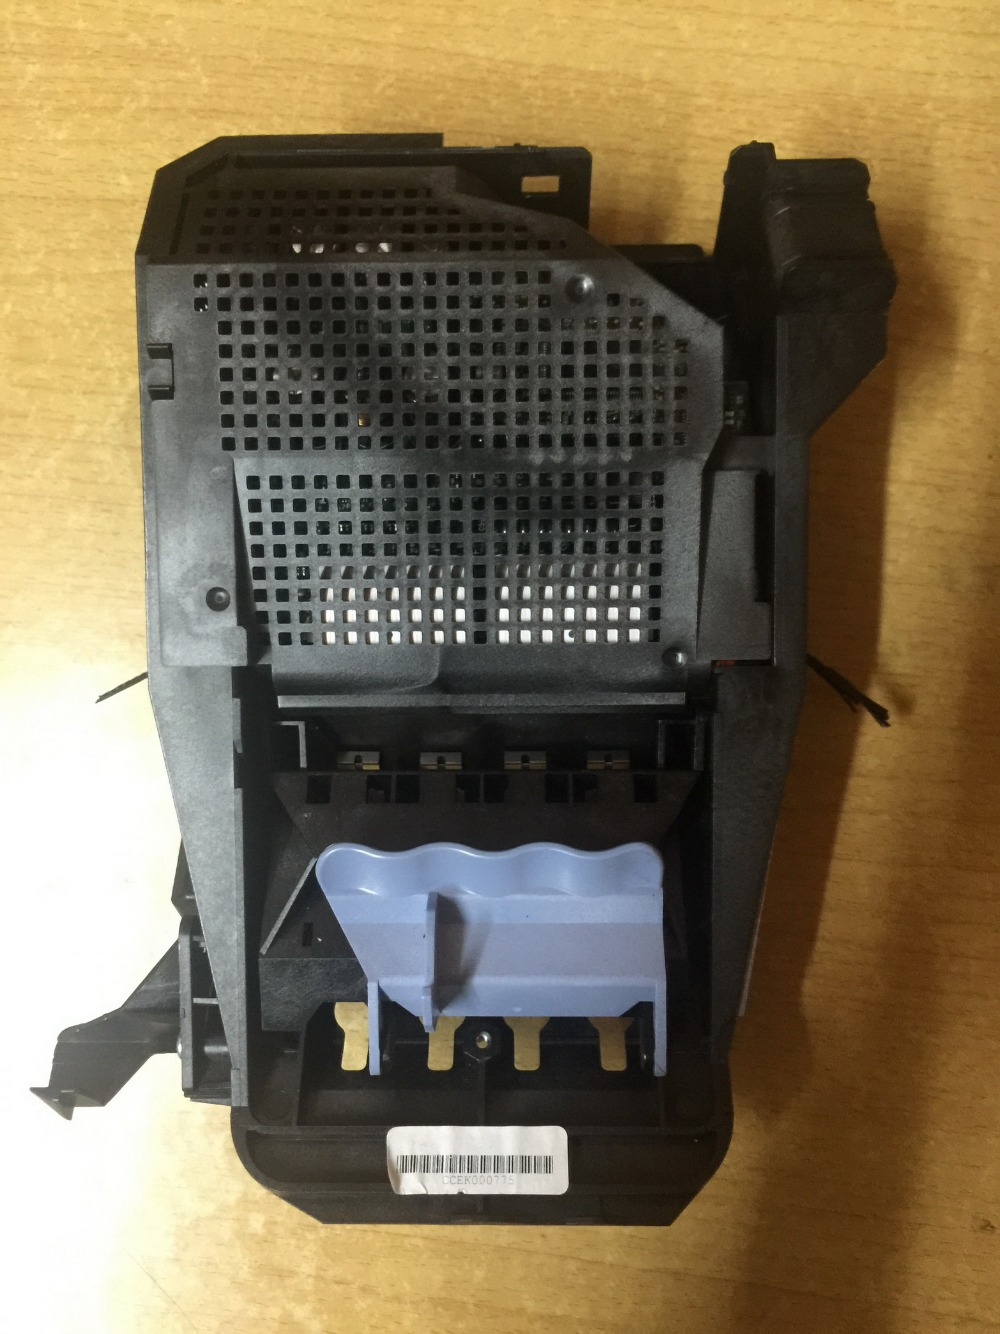 PRINT HEAD HOLDER CARRIAGE C7769 C7779 FOR HP DesignJet 500 800 500PS 800PS A1 A0 42 24 PRINTER PLOTTER power supply unit p n c7769 60334 for hp designjet 500 800 510 820 plotter 24 42 a0 a1